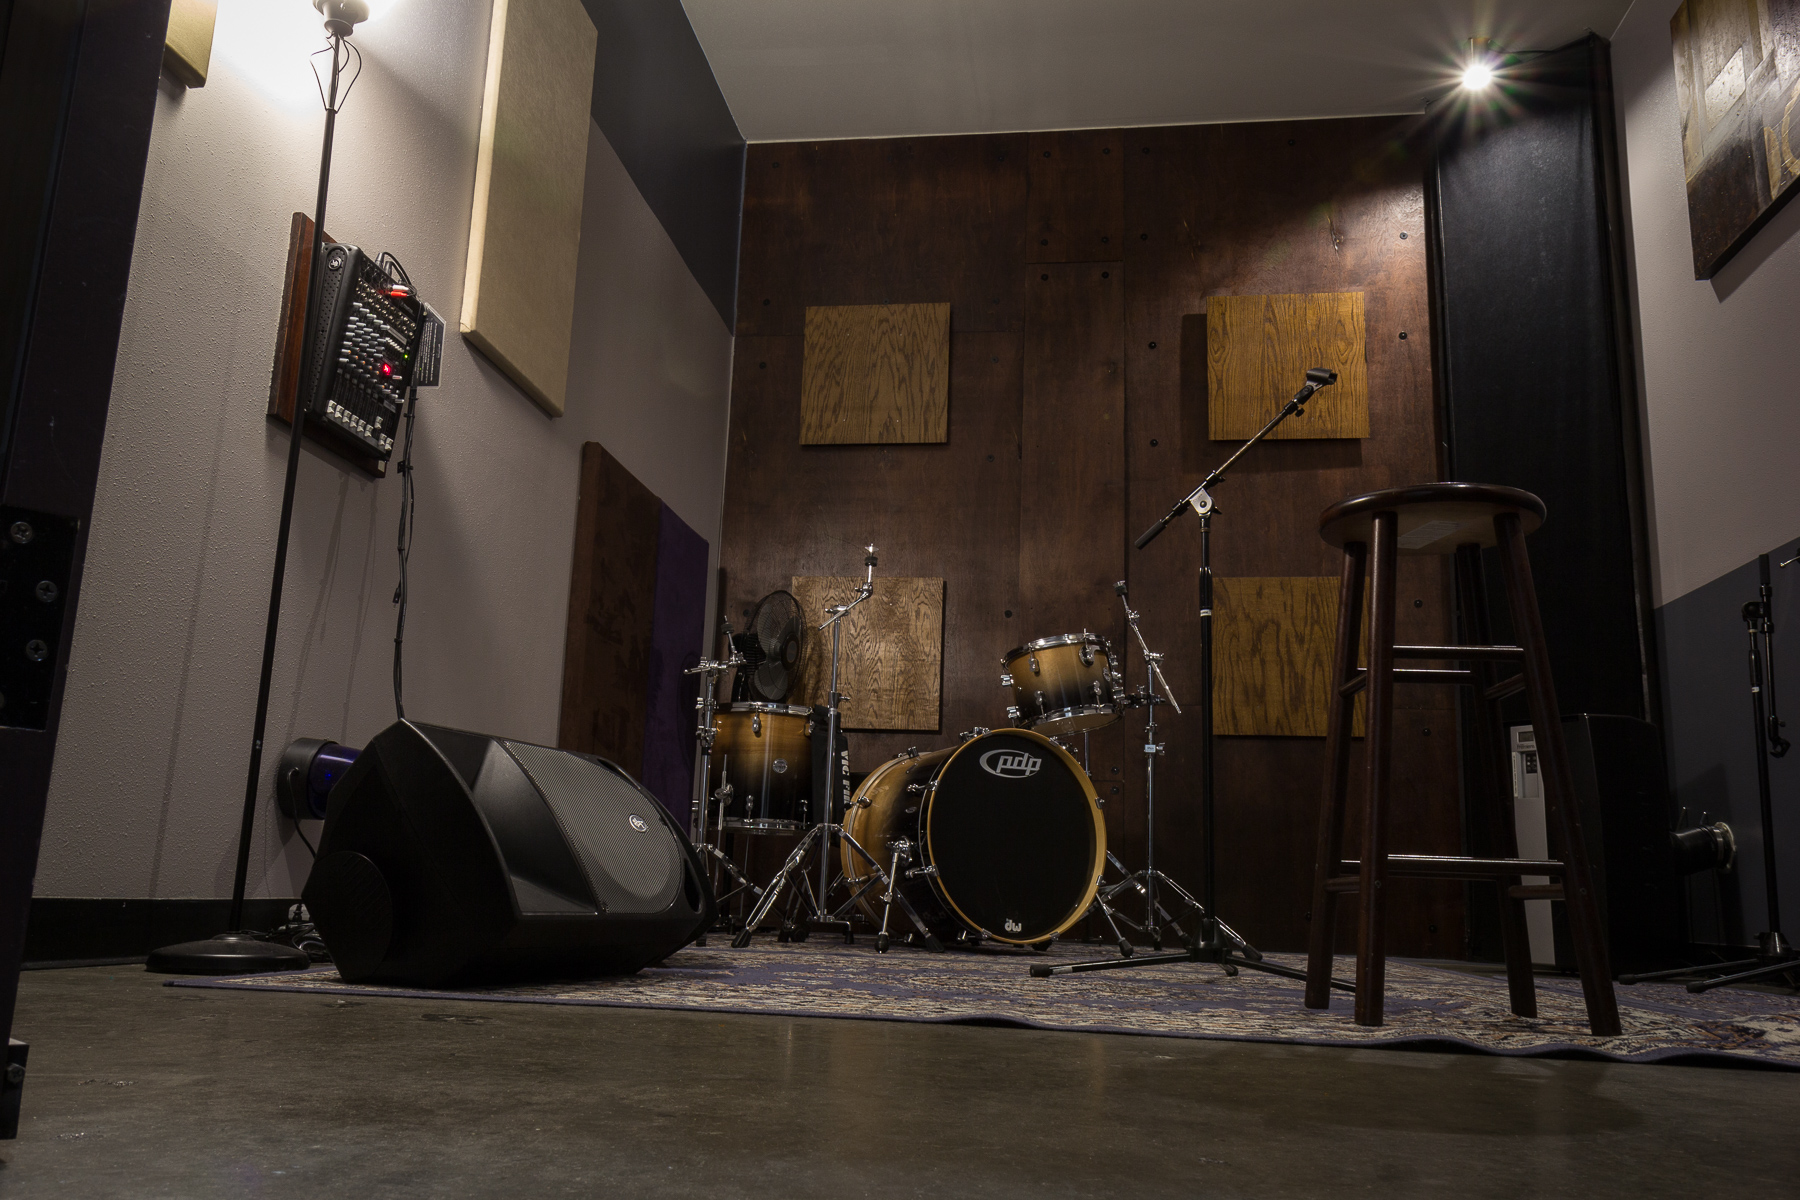 3-Piece Studio - Will accommodate 3 people with equipment nicely. Based on the Fibonacci sequence, it aims for a flat eq response and is treated for a good amount of ambiance. The dimensions are 10x16x11. It is a fantastic tracking room. As an option, it comes with an all birch DW PDP Concept drum kit. $13 per hour.